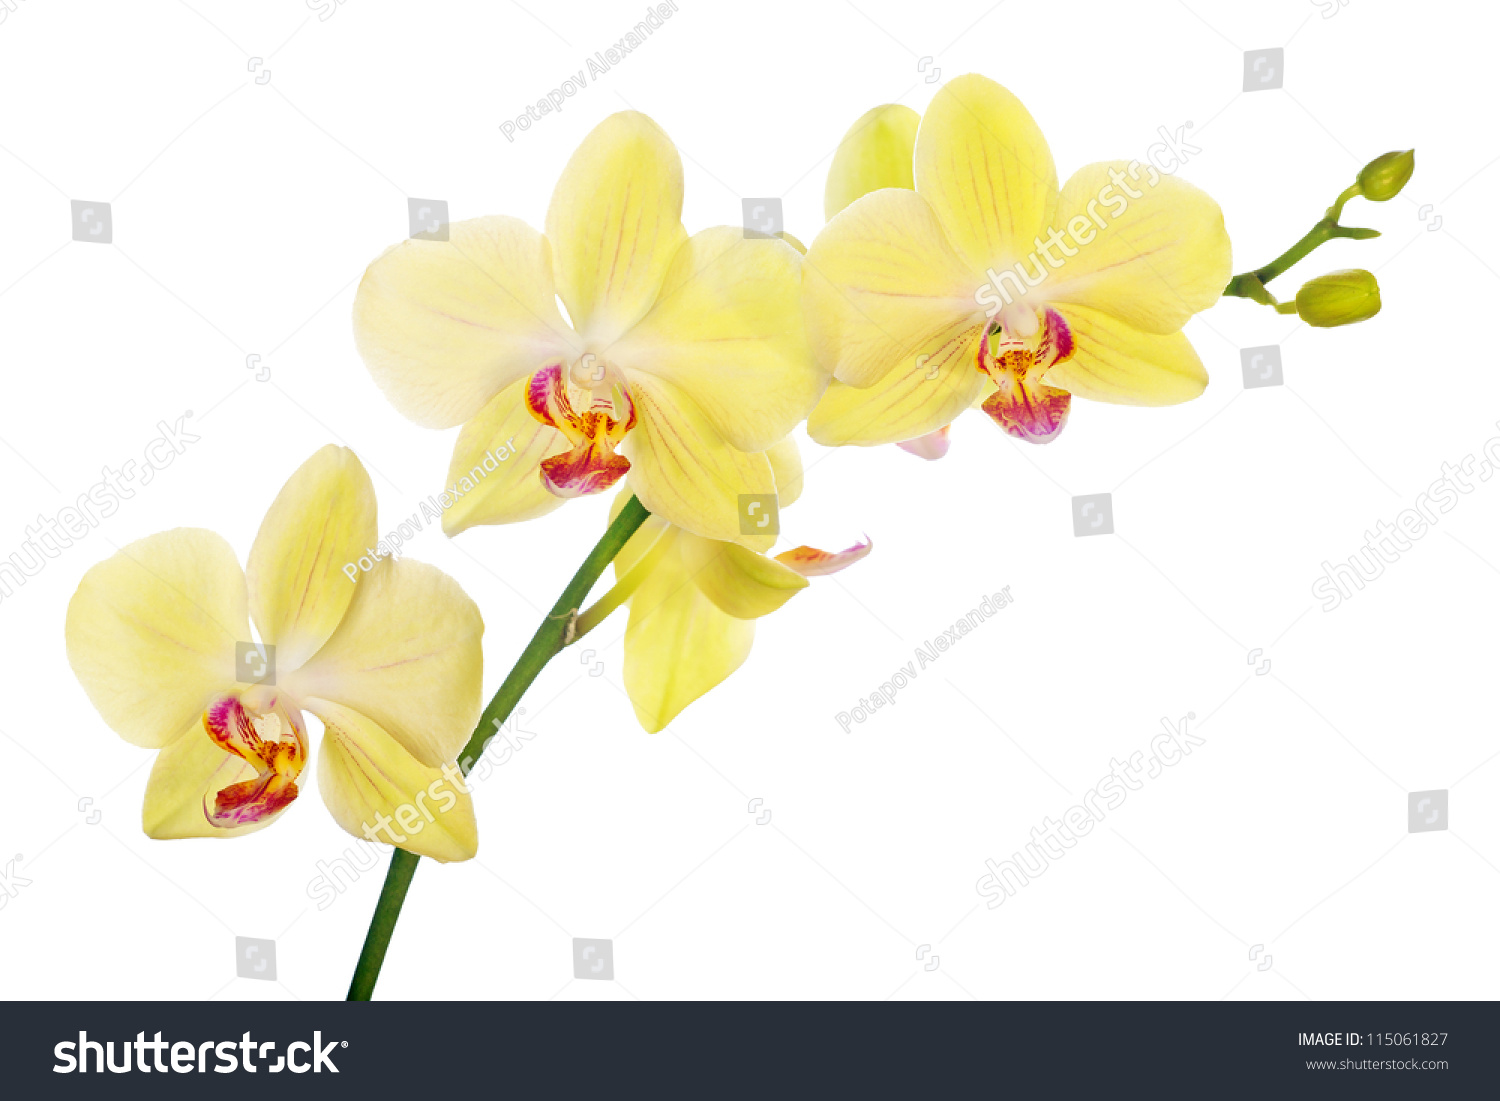 Light yellow orchid flowers isolated on stock photo edit now light yellow orchid flowers isolated on white background mightylinksfo